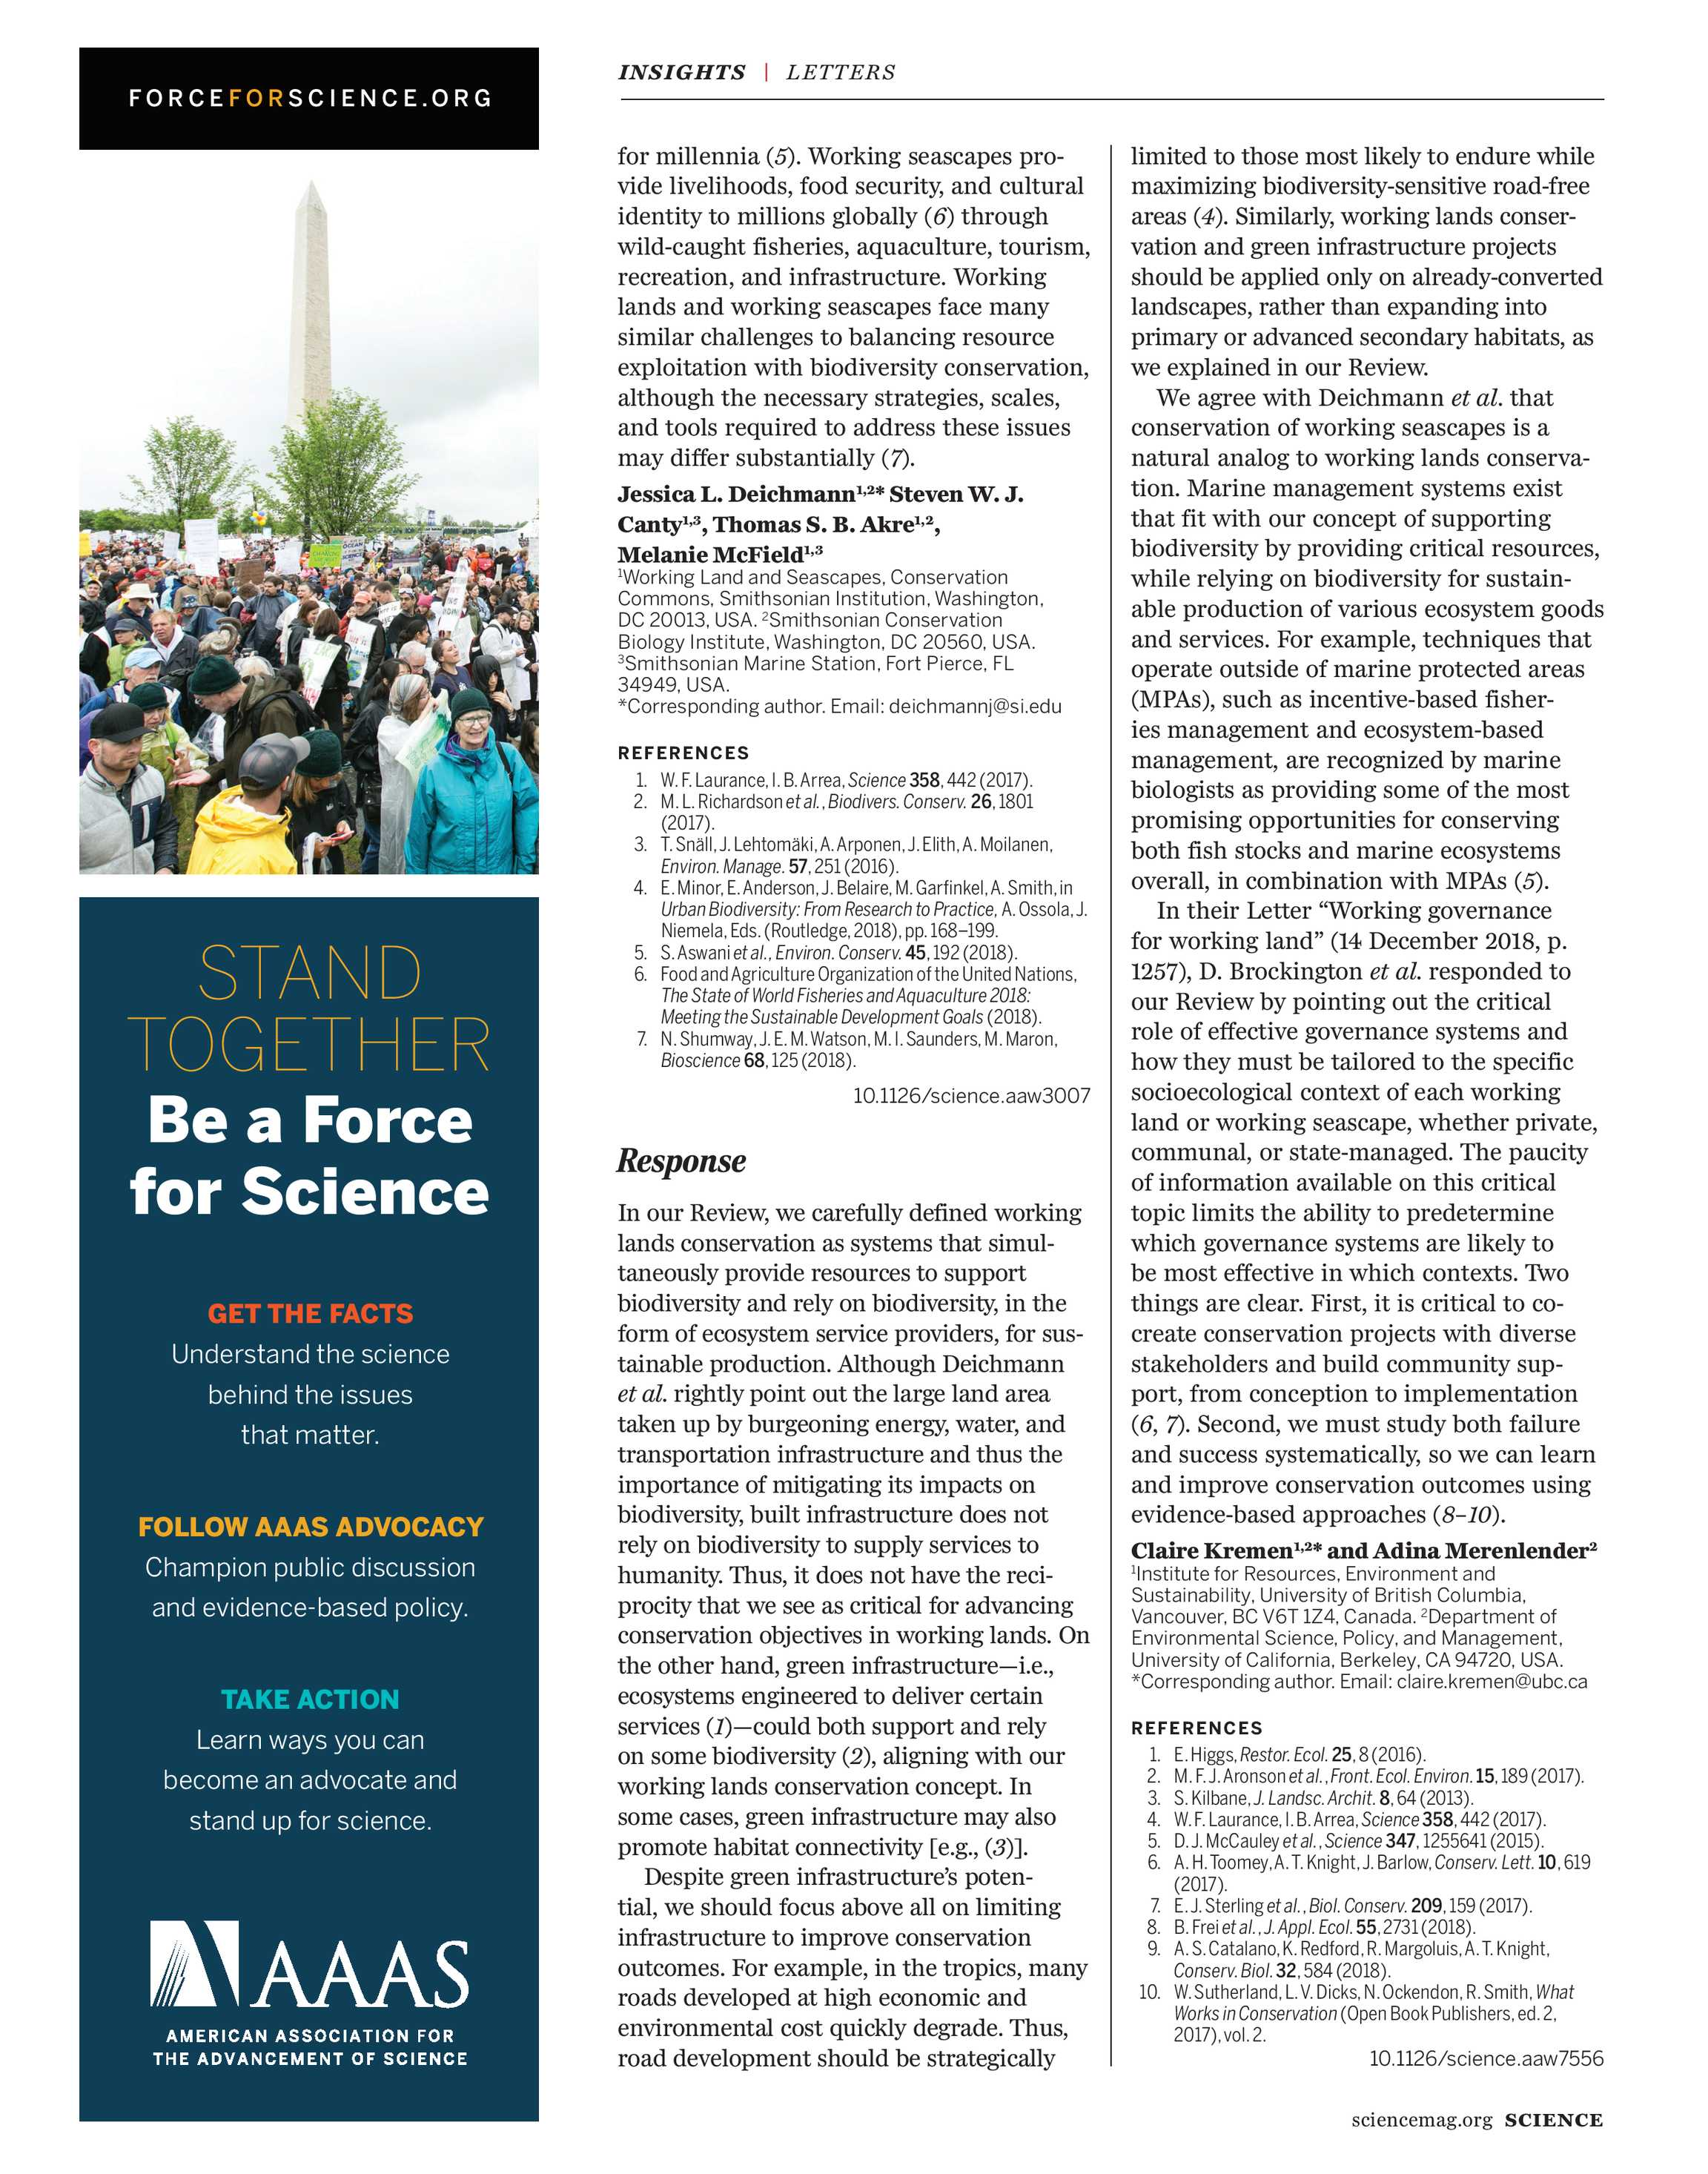 Science Magazine - March 8, 2019 - page 1048